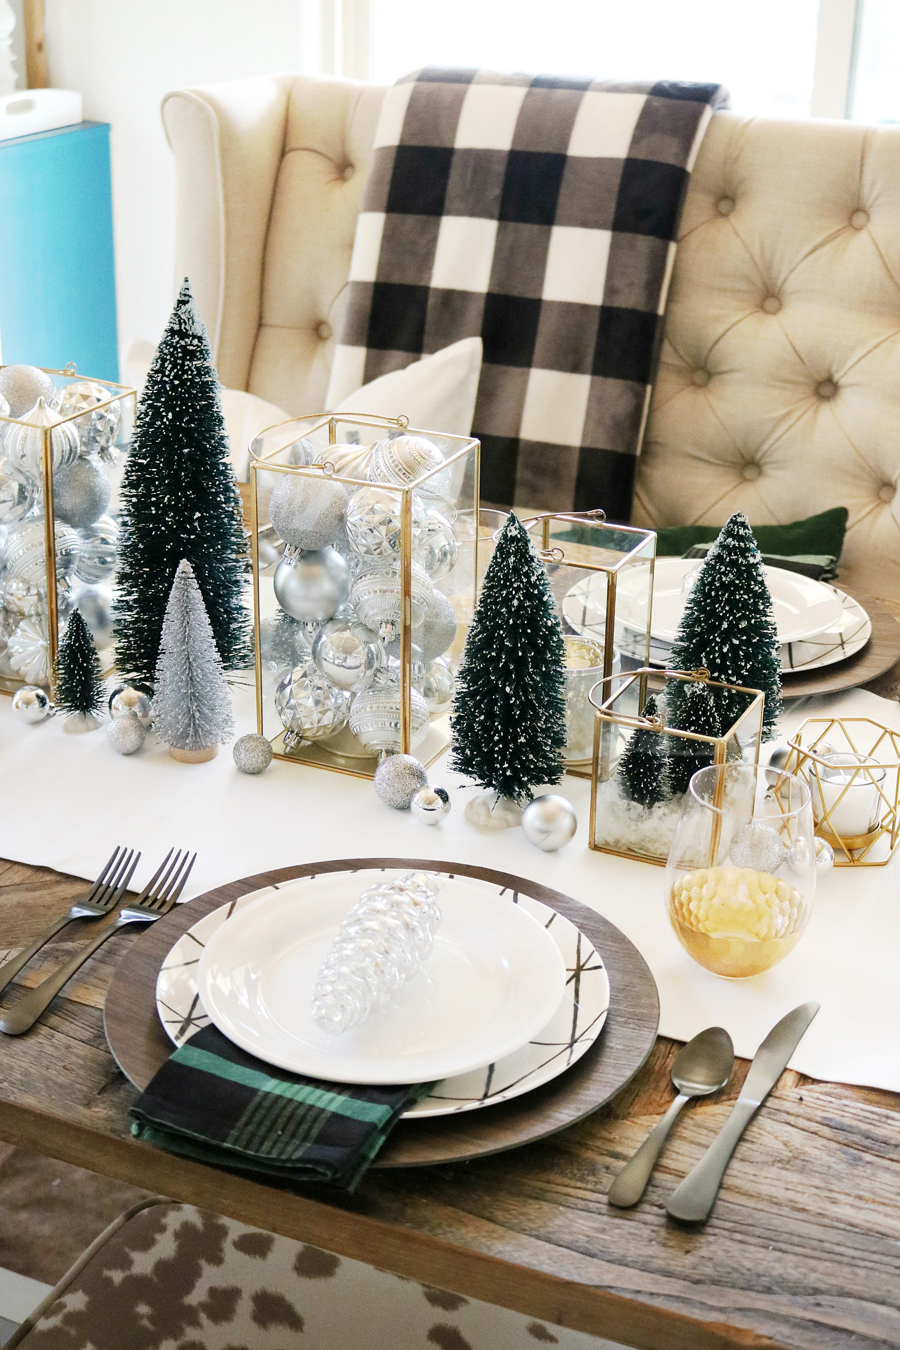 Pleasant Simple Modern Christmas Dining Table Ideas Home Interior And Landscaping Eliaenasavecom